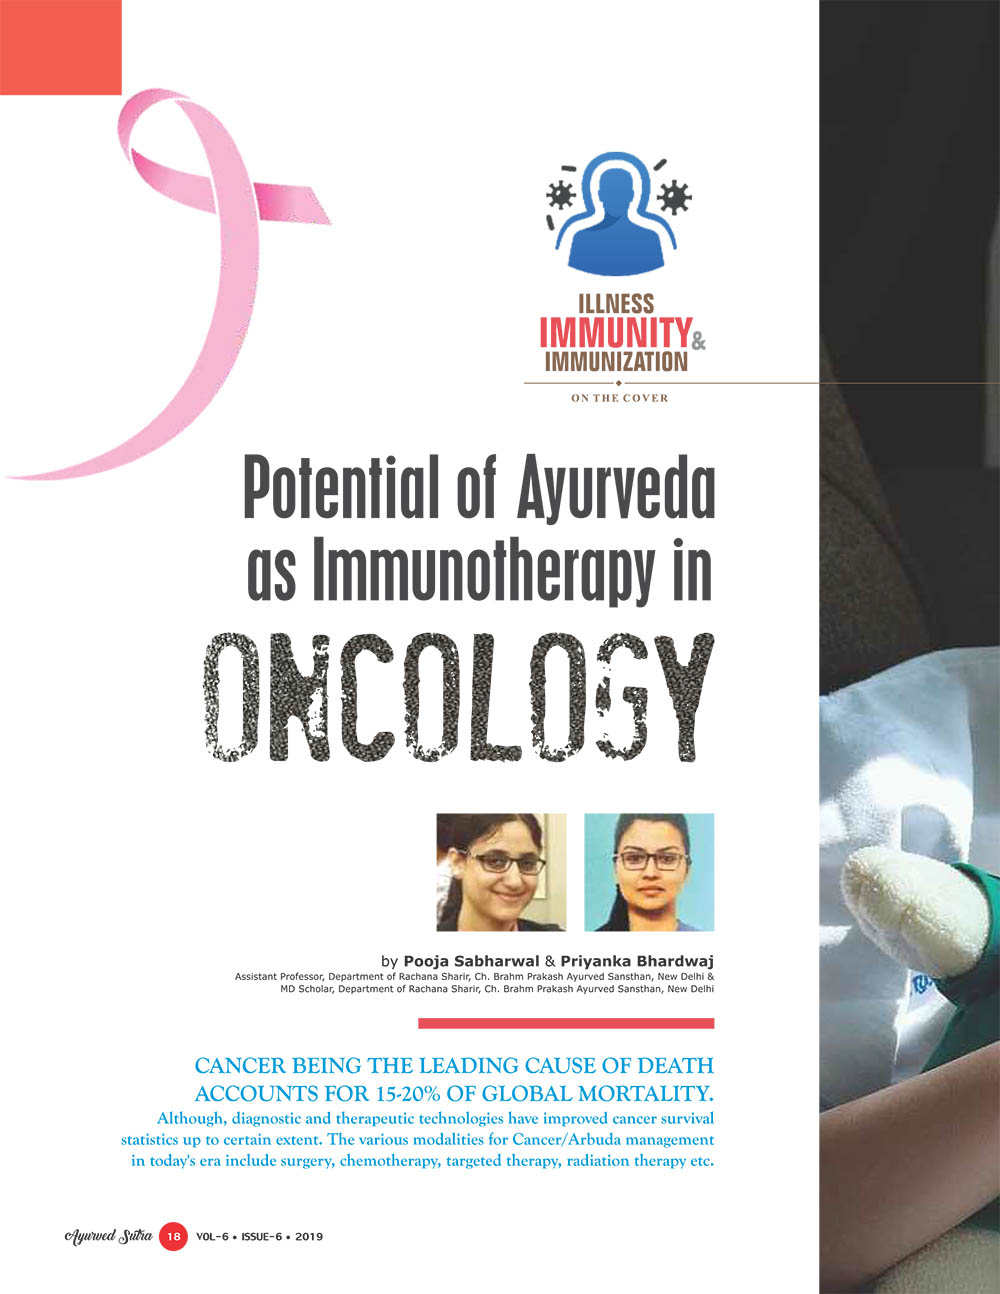 Potential of Ayurveda as Immunotherapy in Oncology